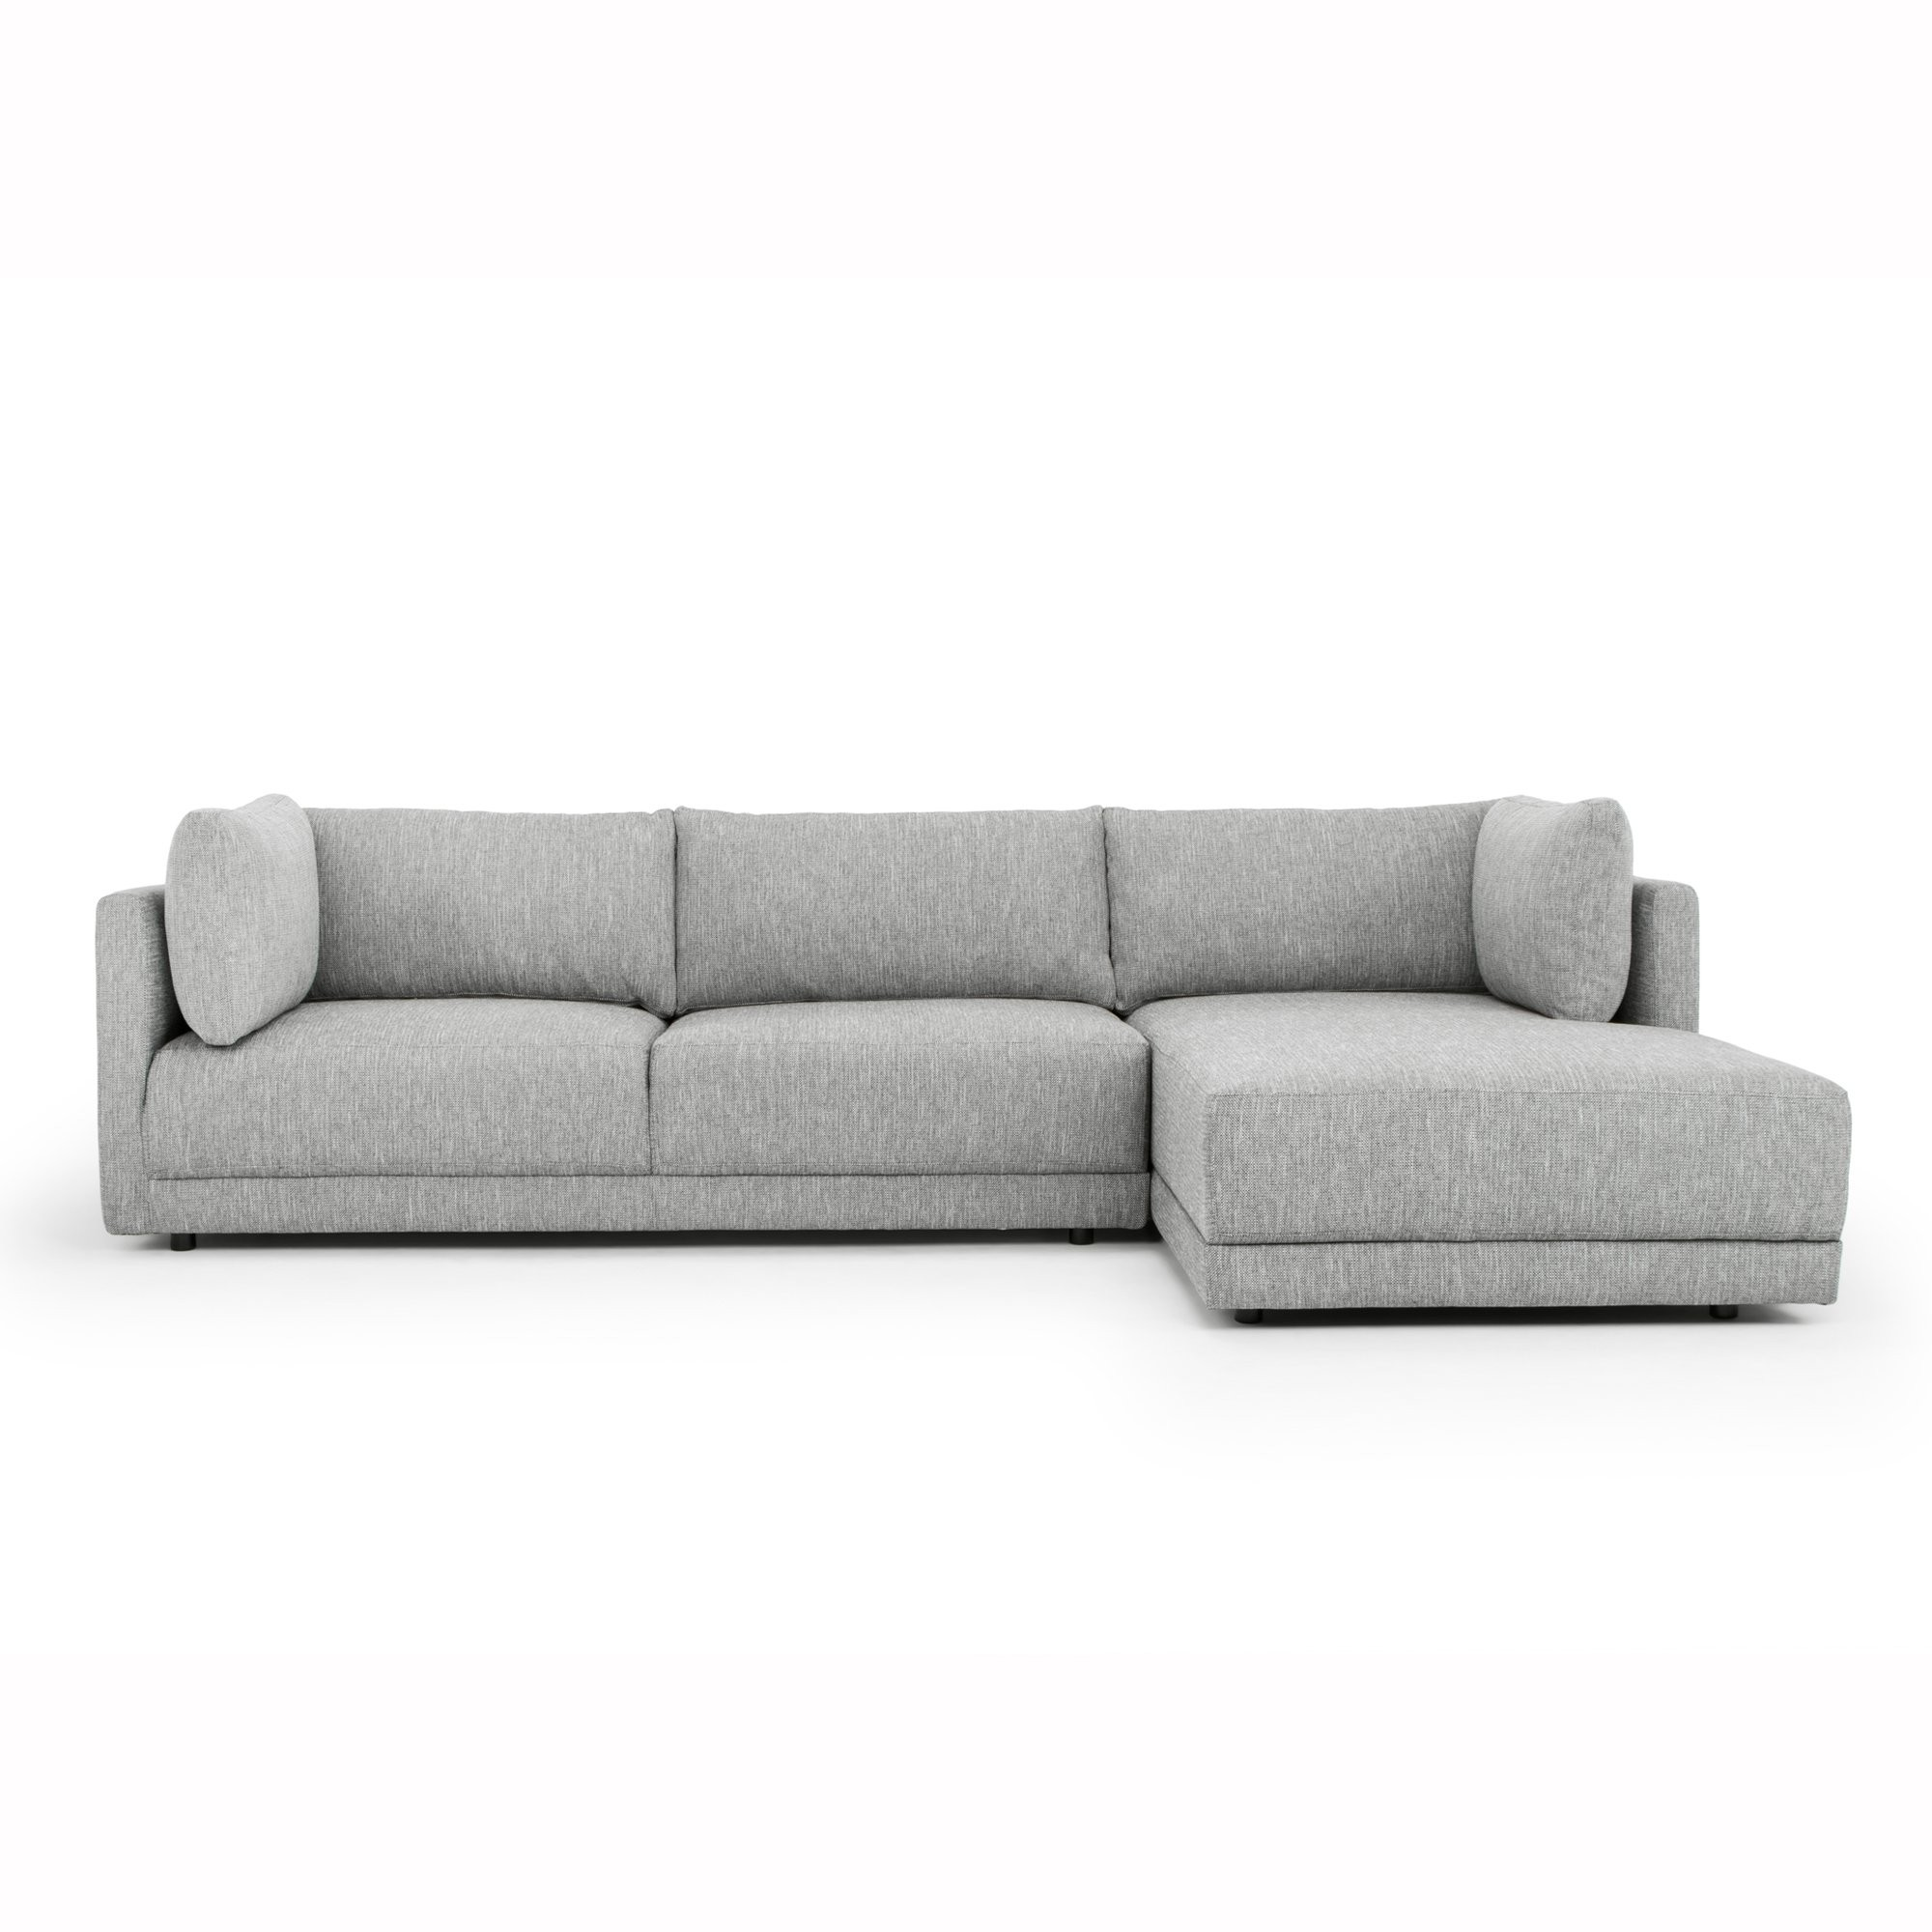 Hensley Fabric Corner Sofa, 2 Seater with RHF Chaise, Graphite Grey